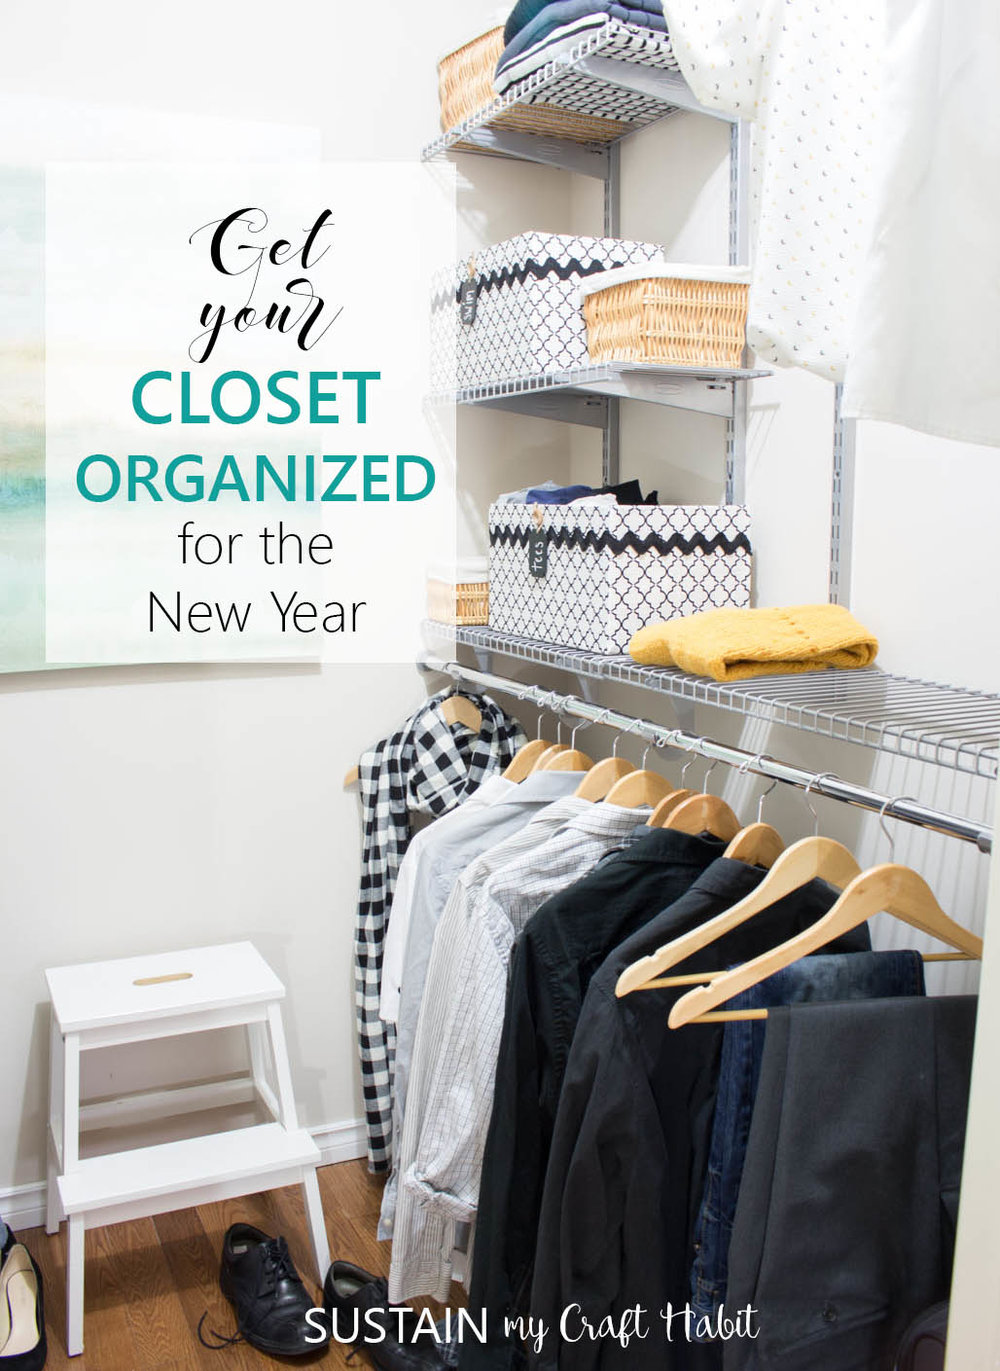 How to install a Rubermaid Configurations Closet organizing sytem | DIY home organization ideas